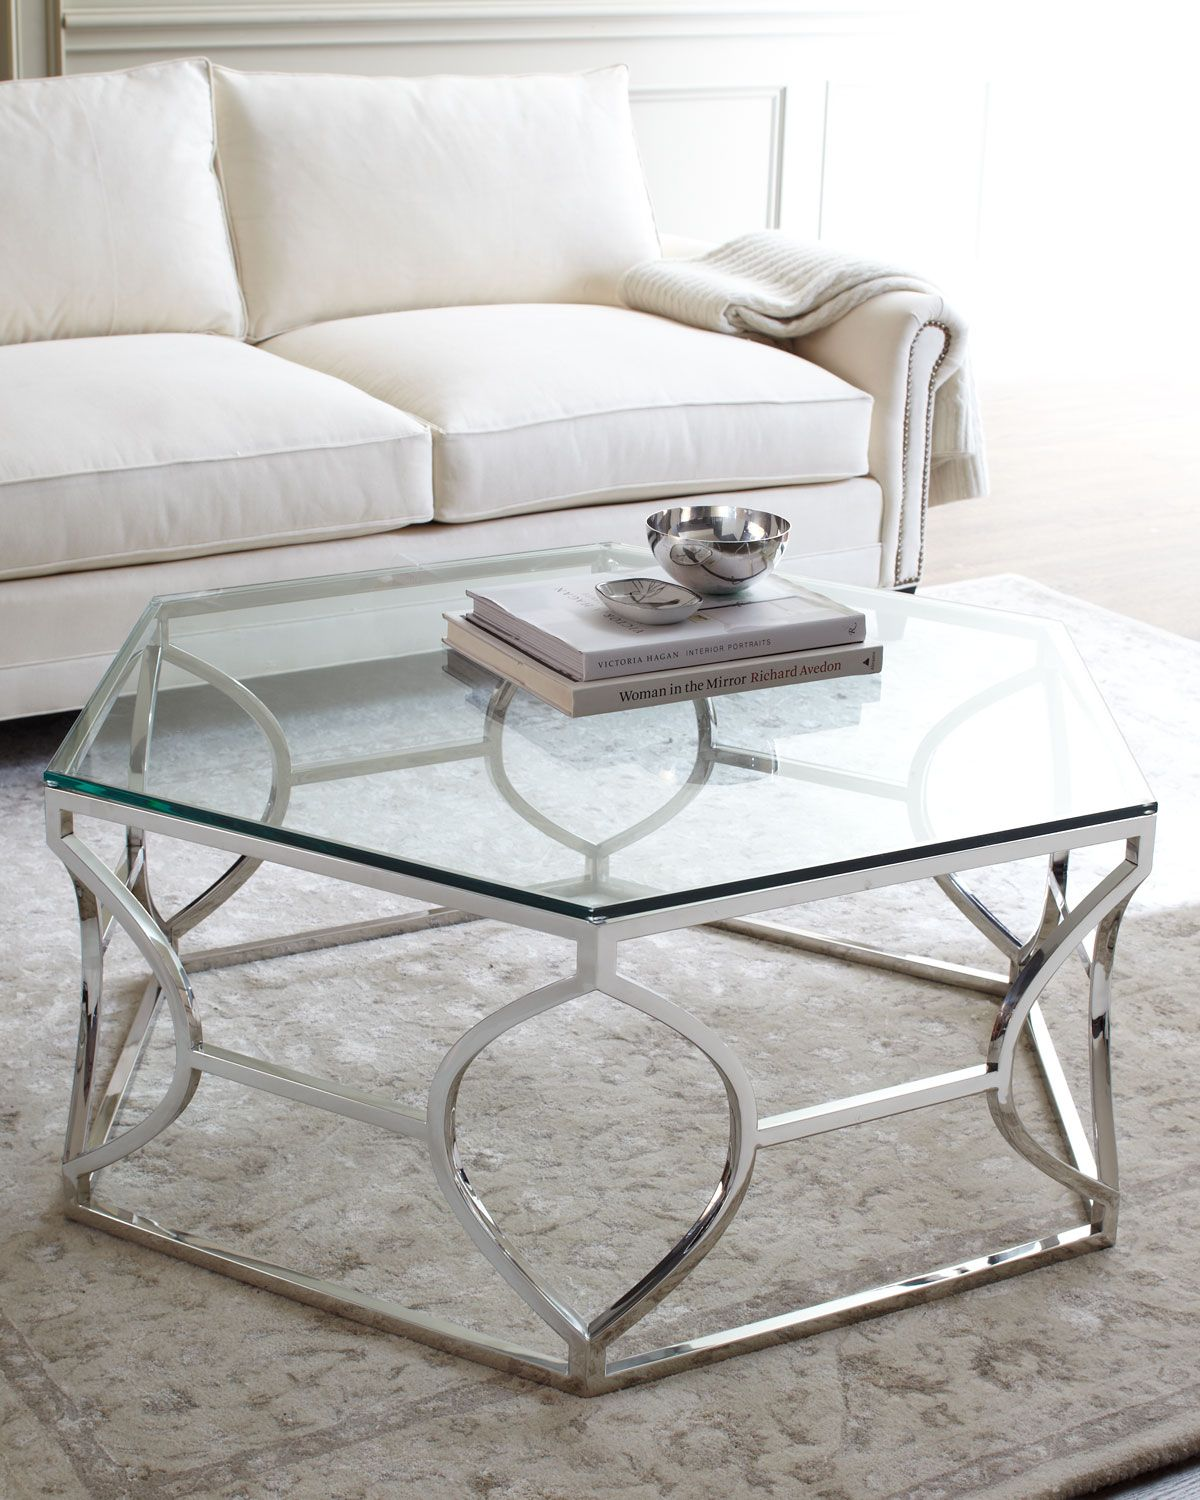 Glass coffee table in living room paxton